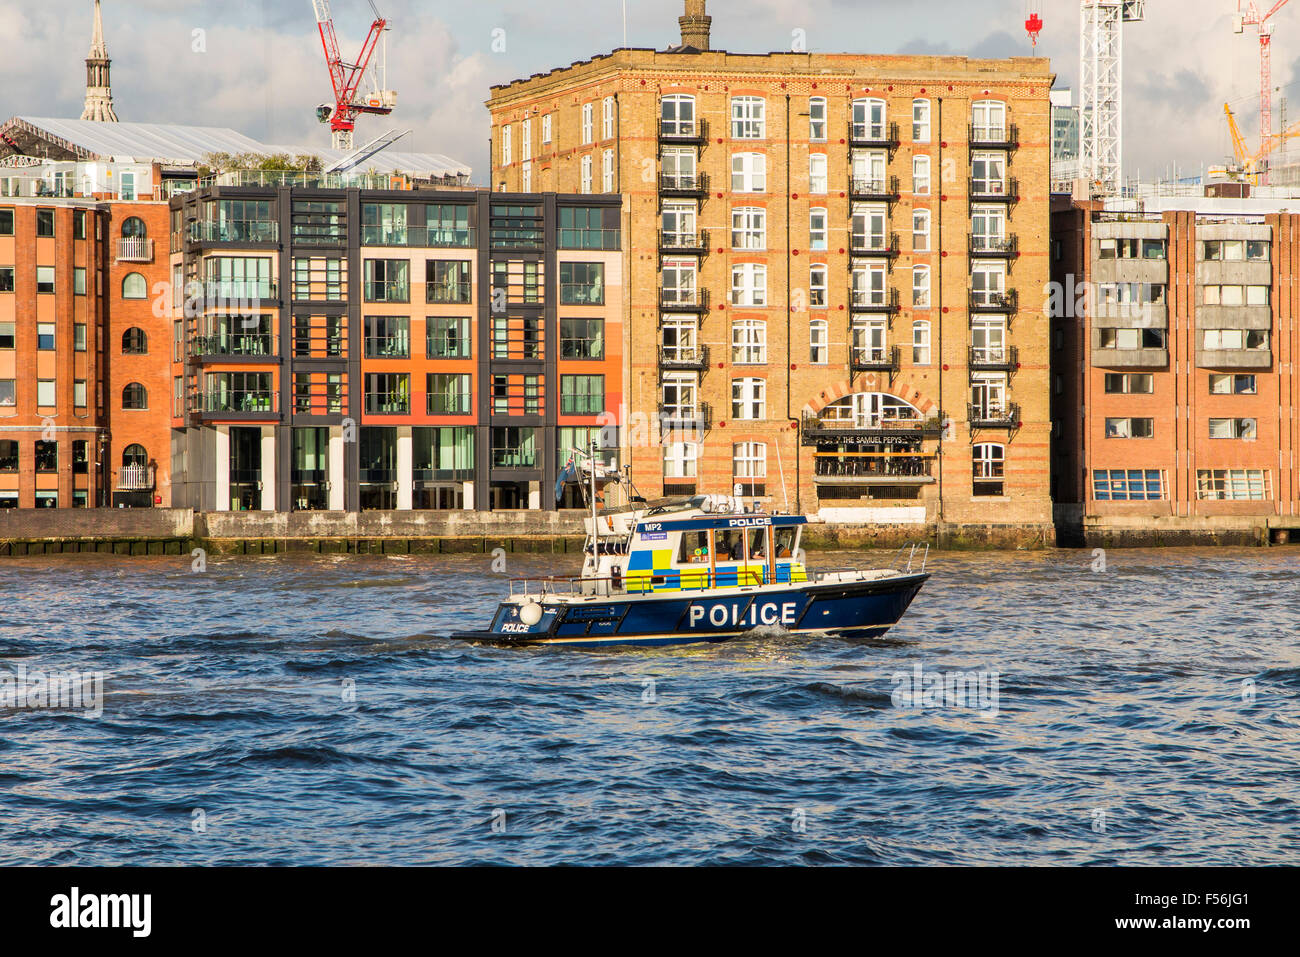 Marine Police Force or Thames River Police boat on the River Thames passing the Samuel Pepys pub in the riverbank, - Stock Image